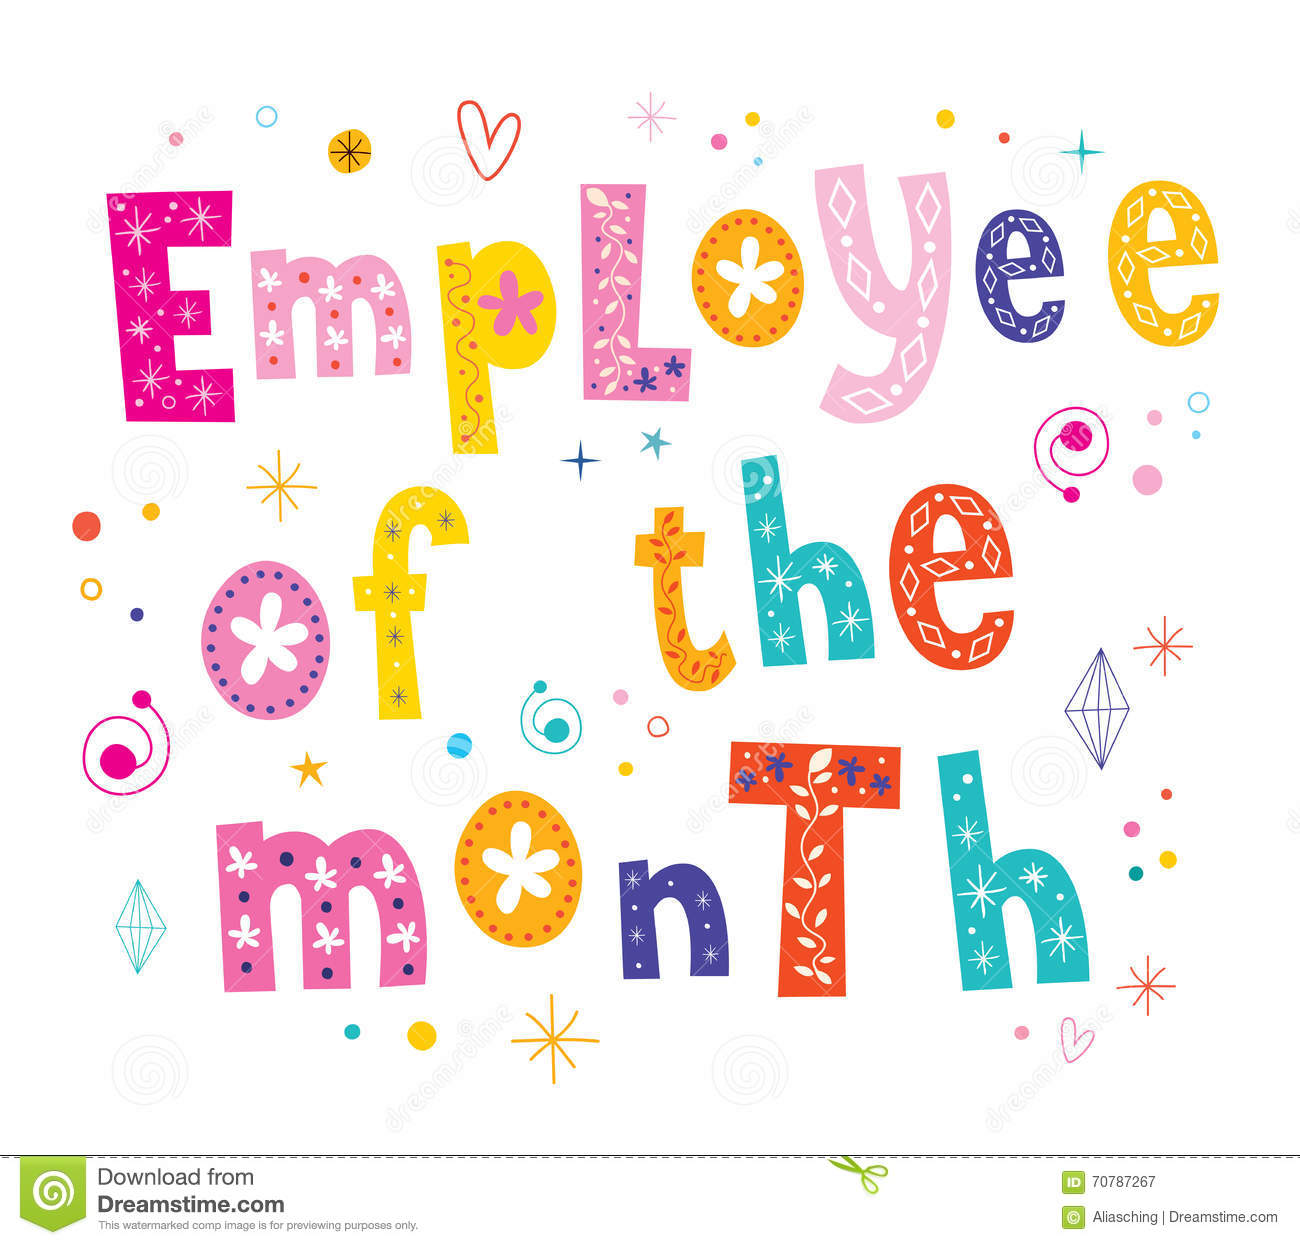 photo about Employee of the Month Printable Certificate known as free of charge worker of the thirty day period certification - Kadil